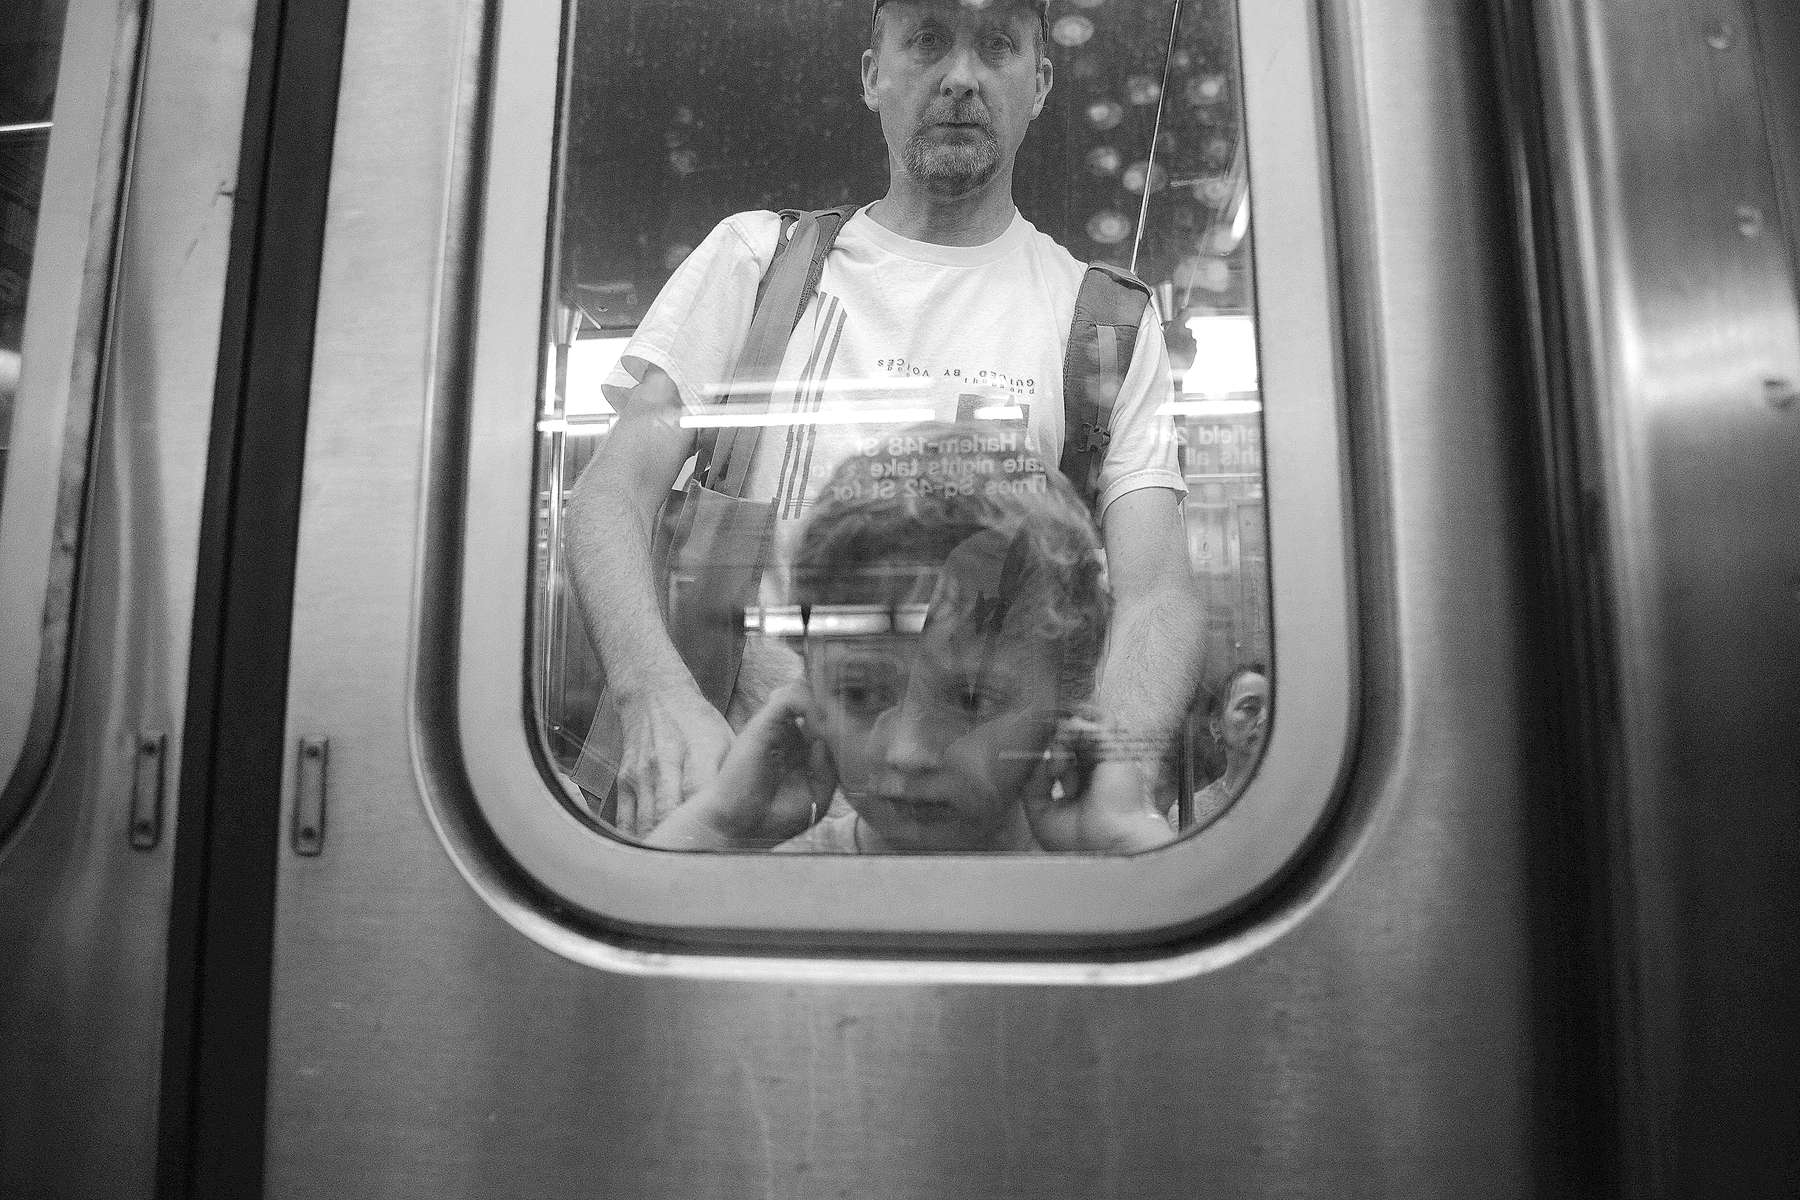 Subway scene - September, 2013